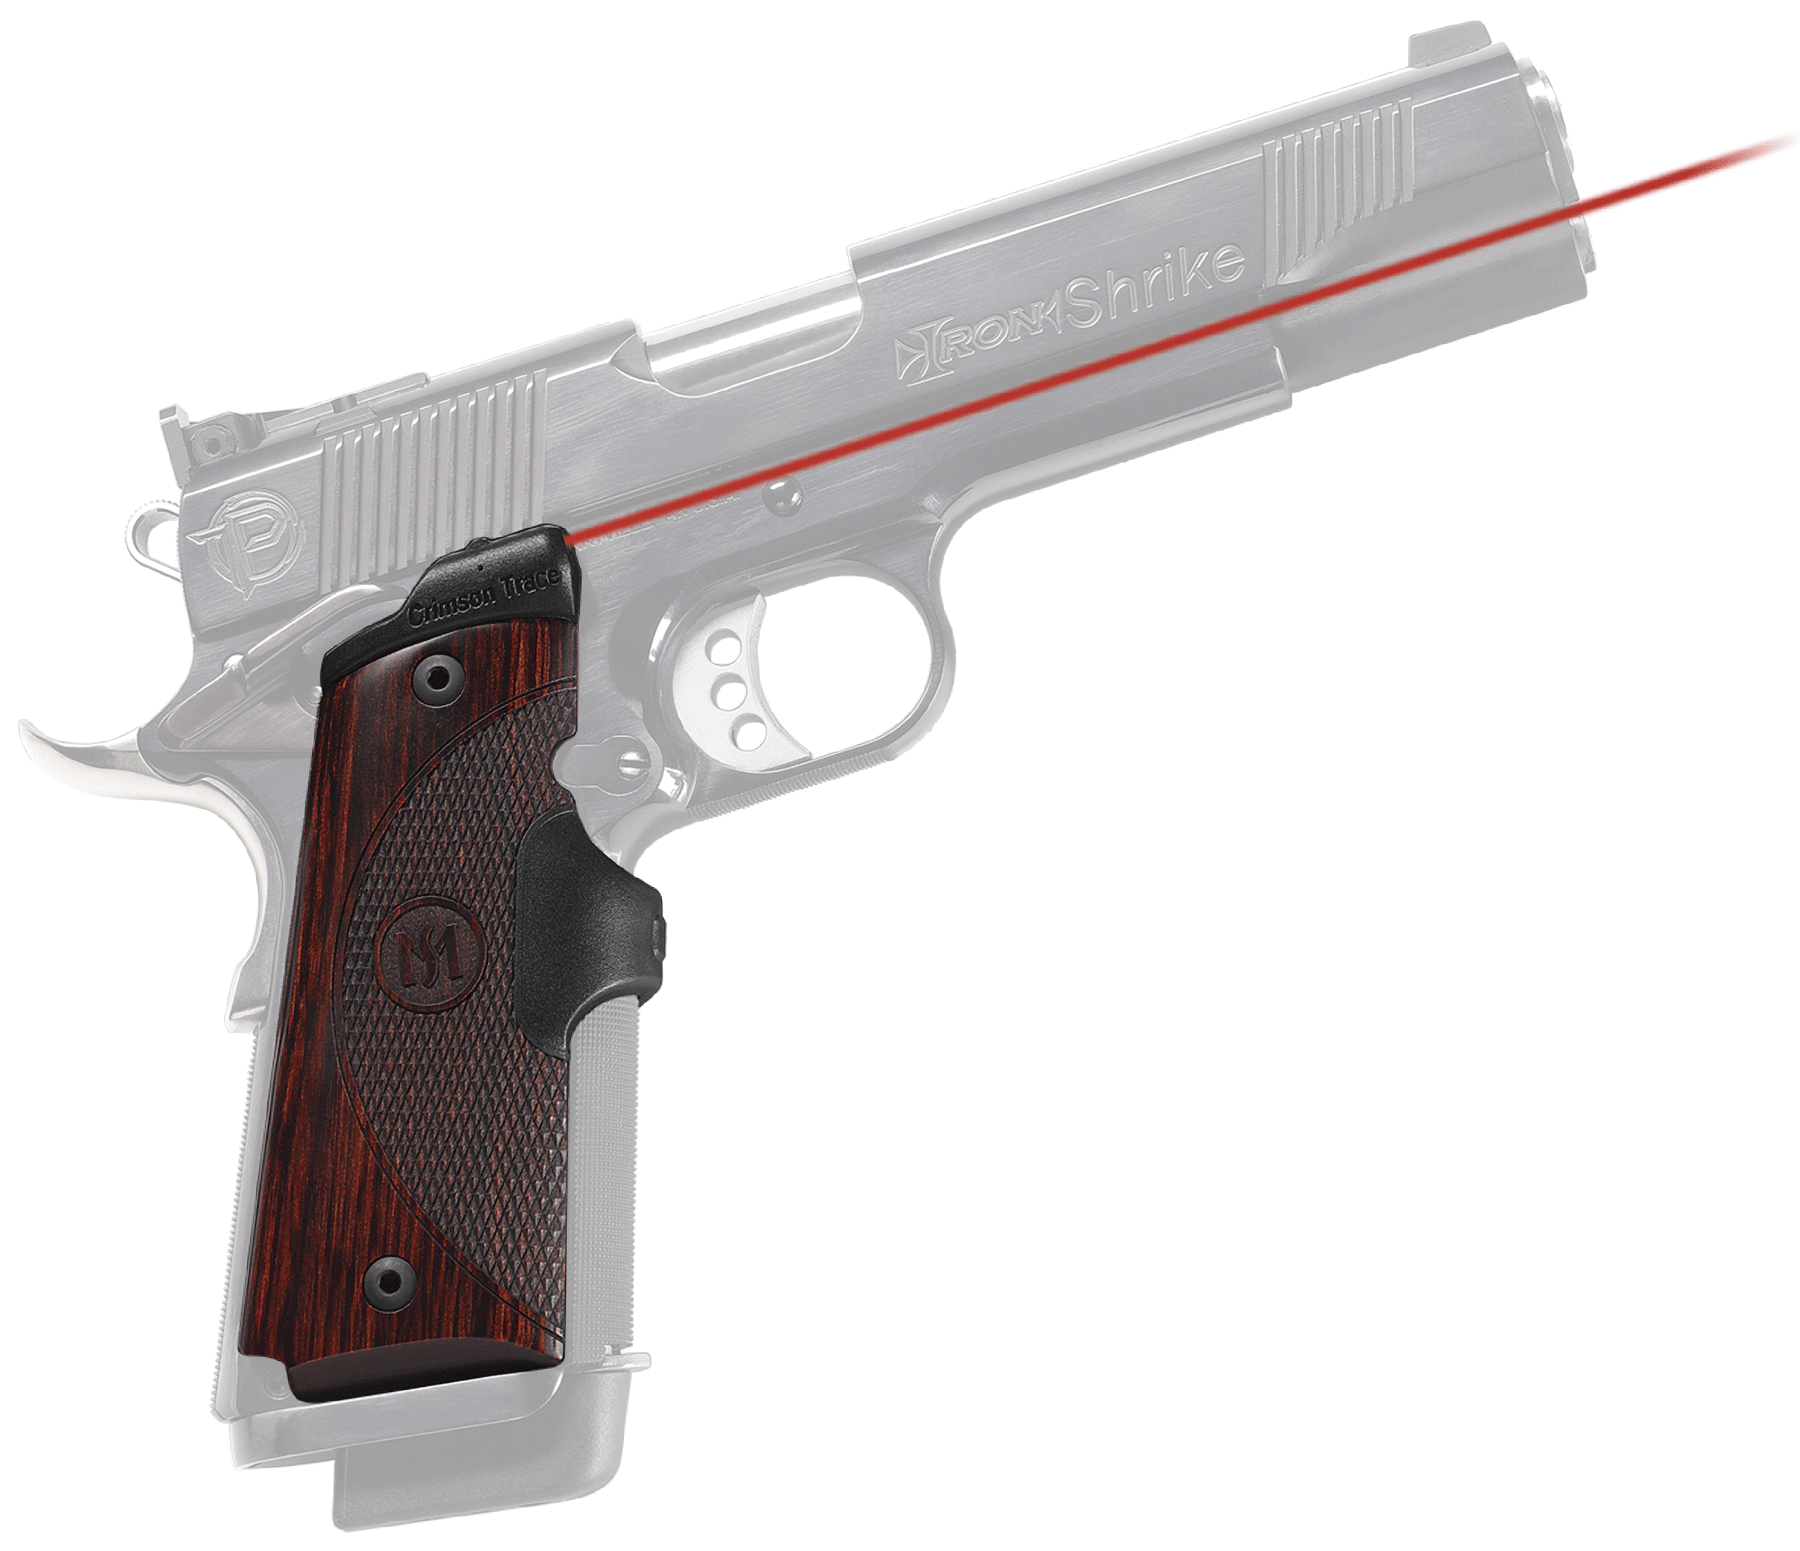 Crimson Trace® Master Series™ Lasergrips® - 1911 Full Size - Rosewood - Red Laser